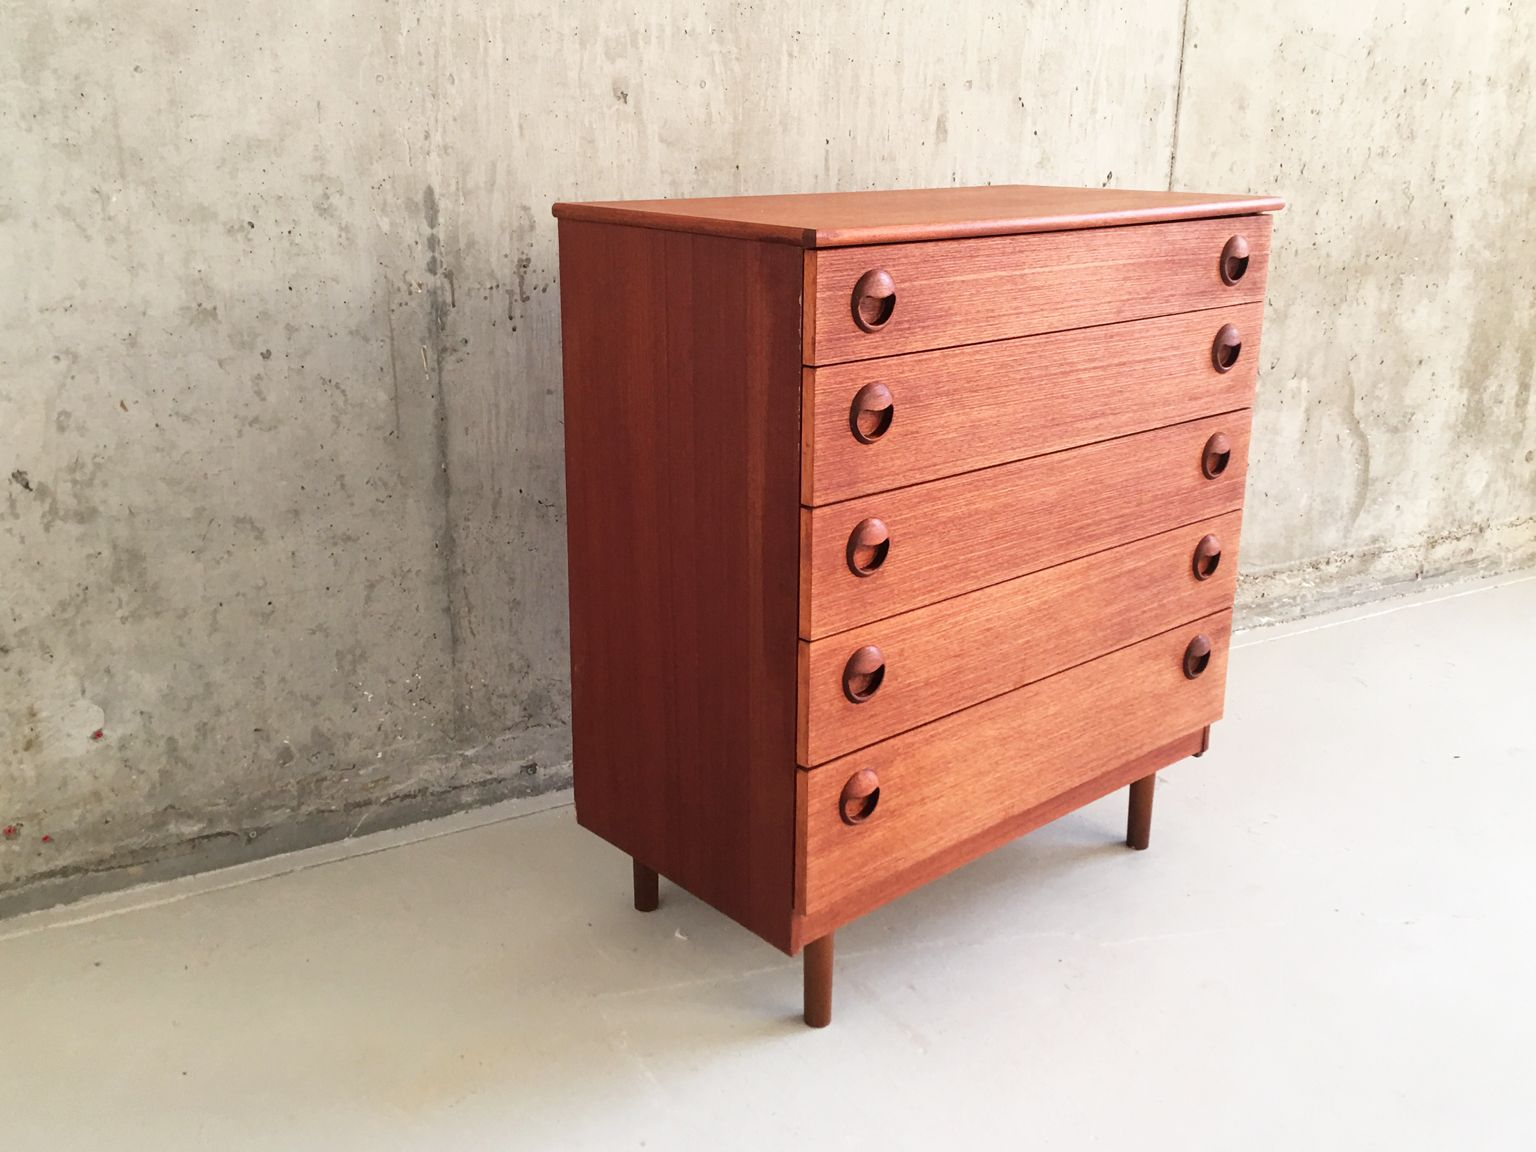 hohe britische mid century kommode aus teak 1970er bei. Black Bedroom Furniture Sets. Home Design Ideas